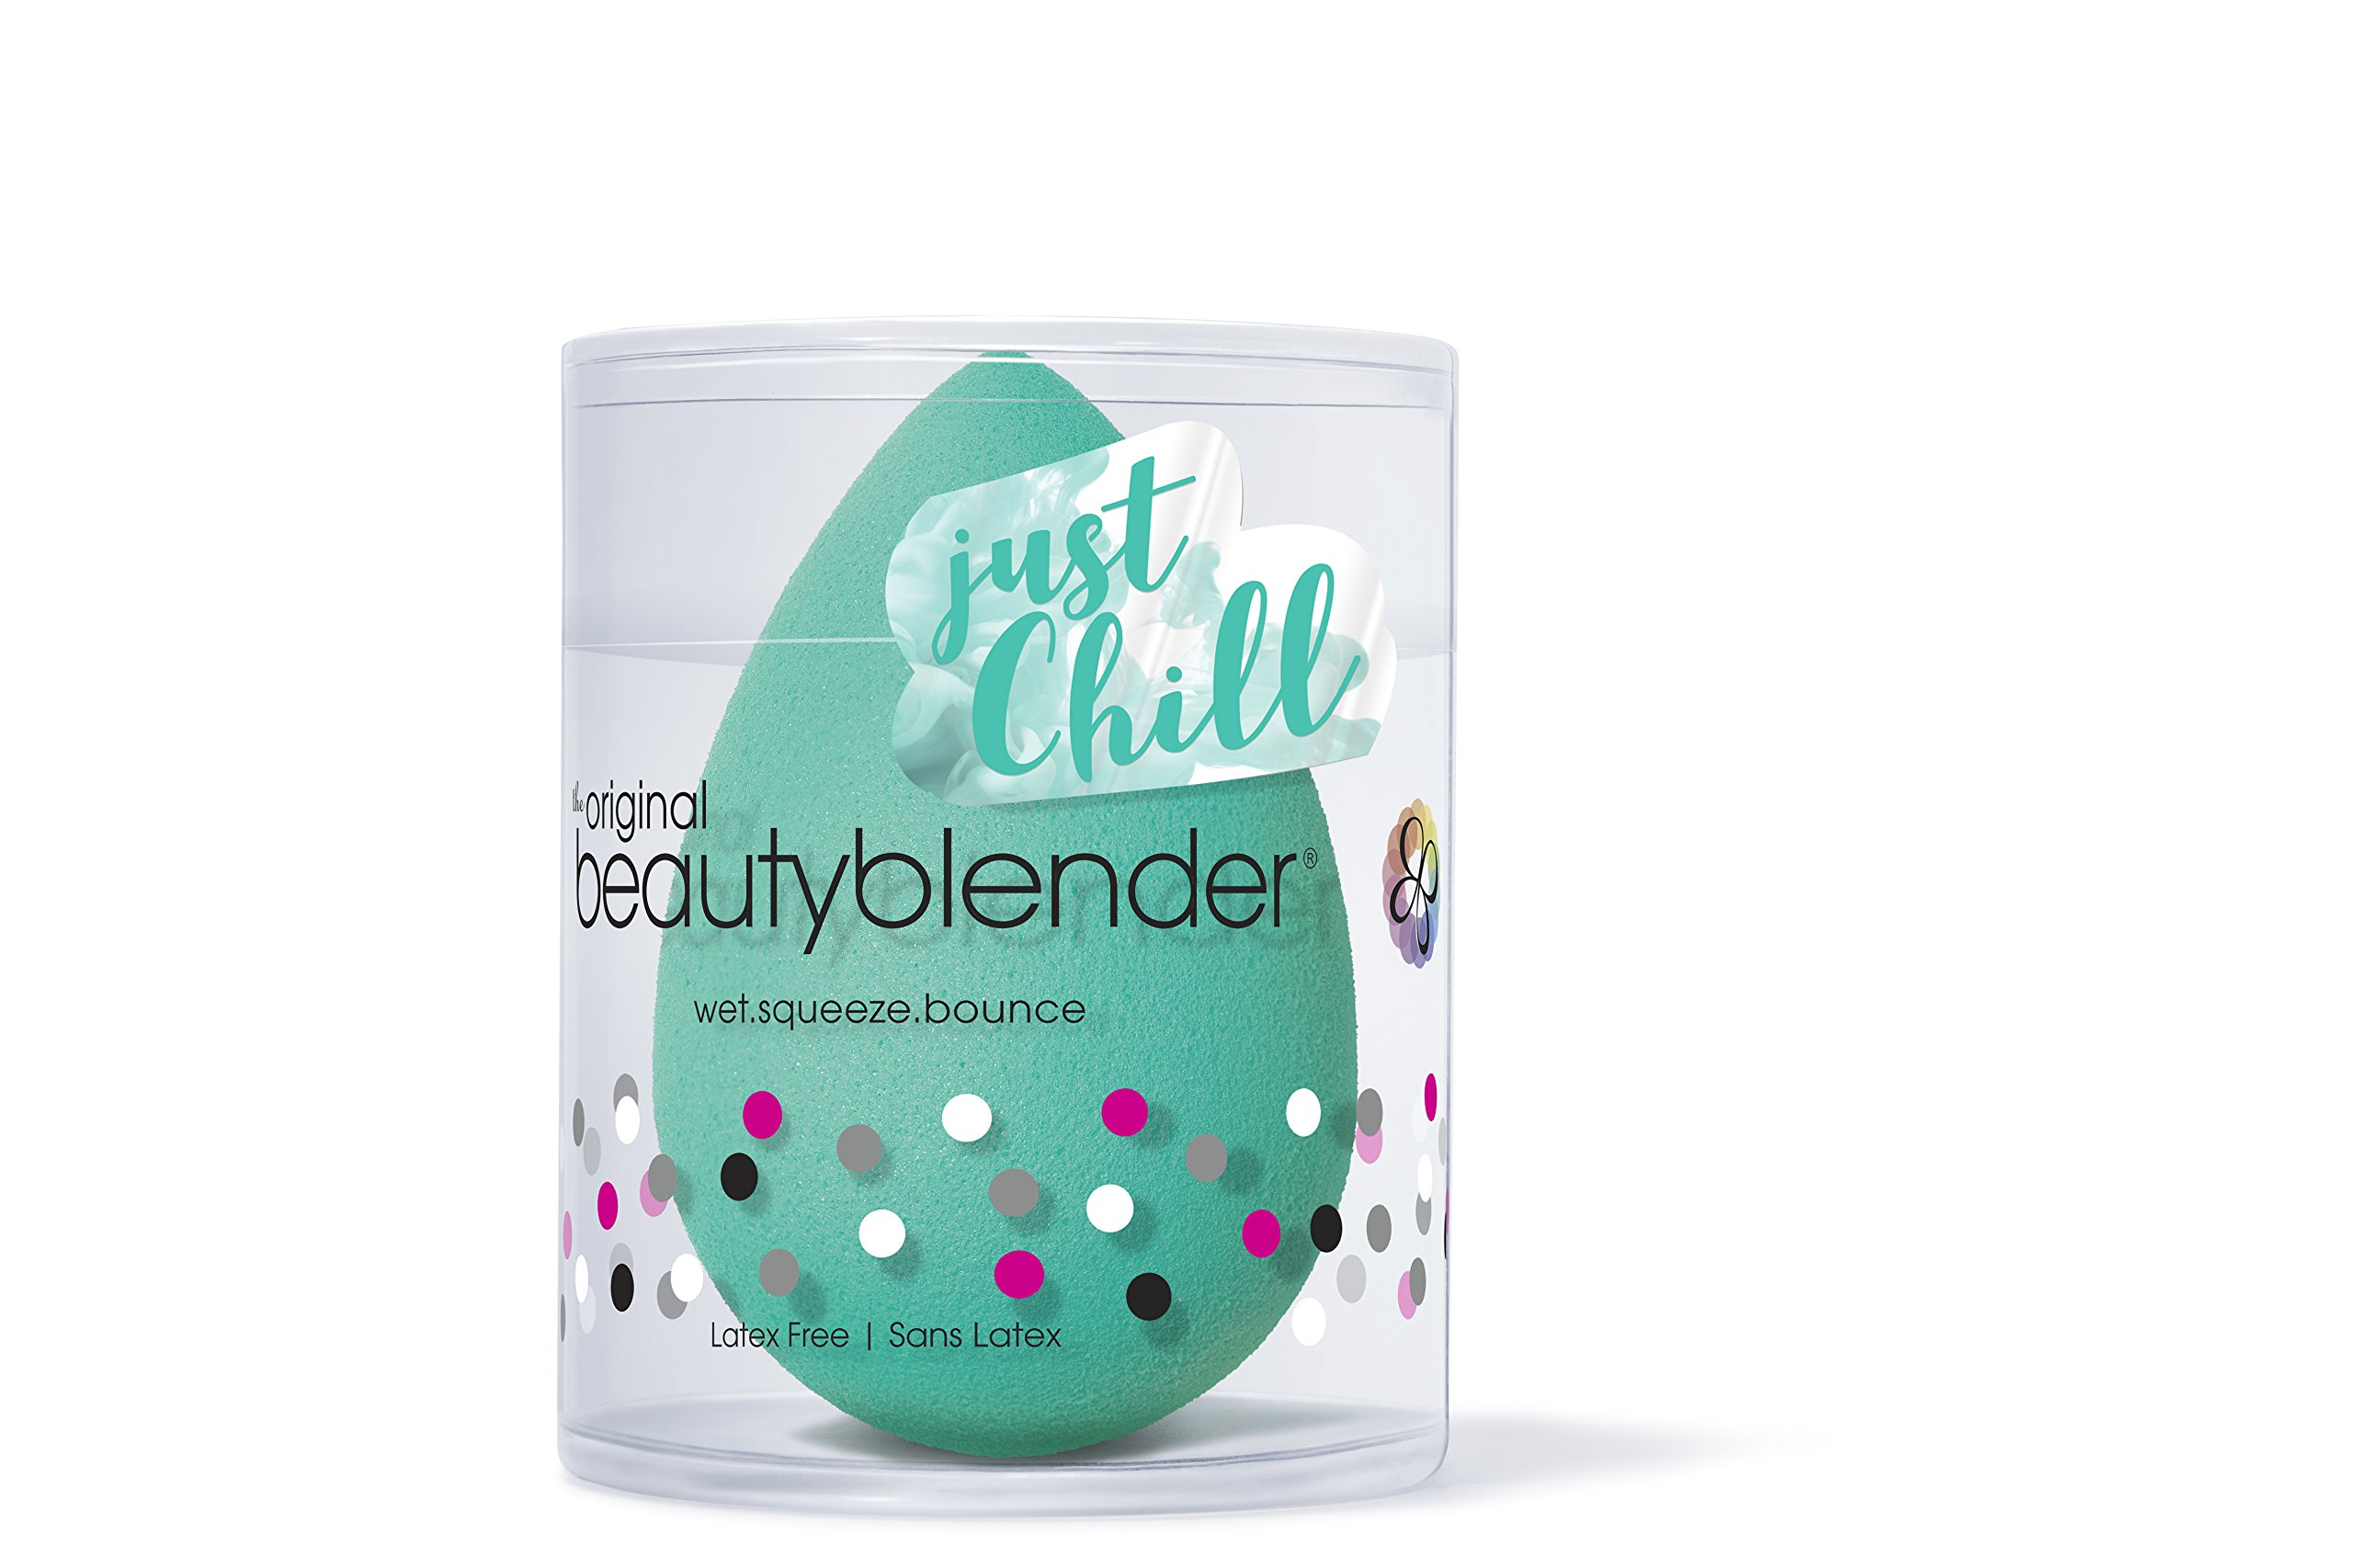 beautyblender chill, Makeup Sponge For Foundations, Powders & Creams